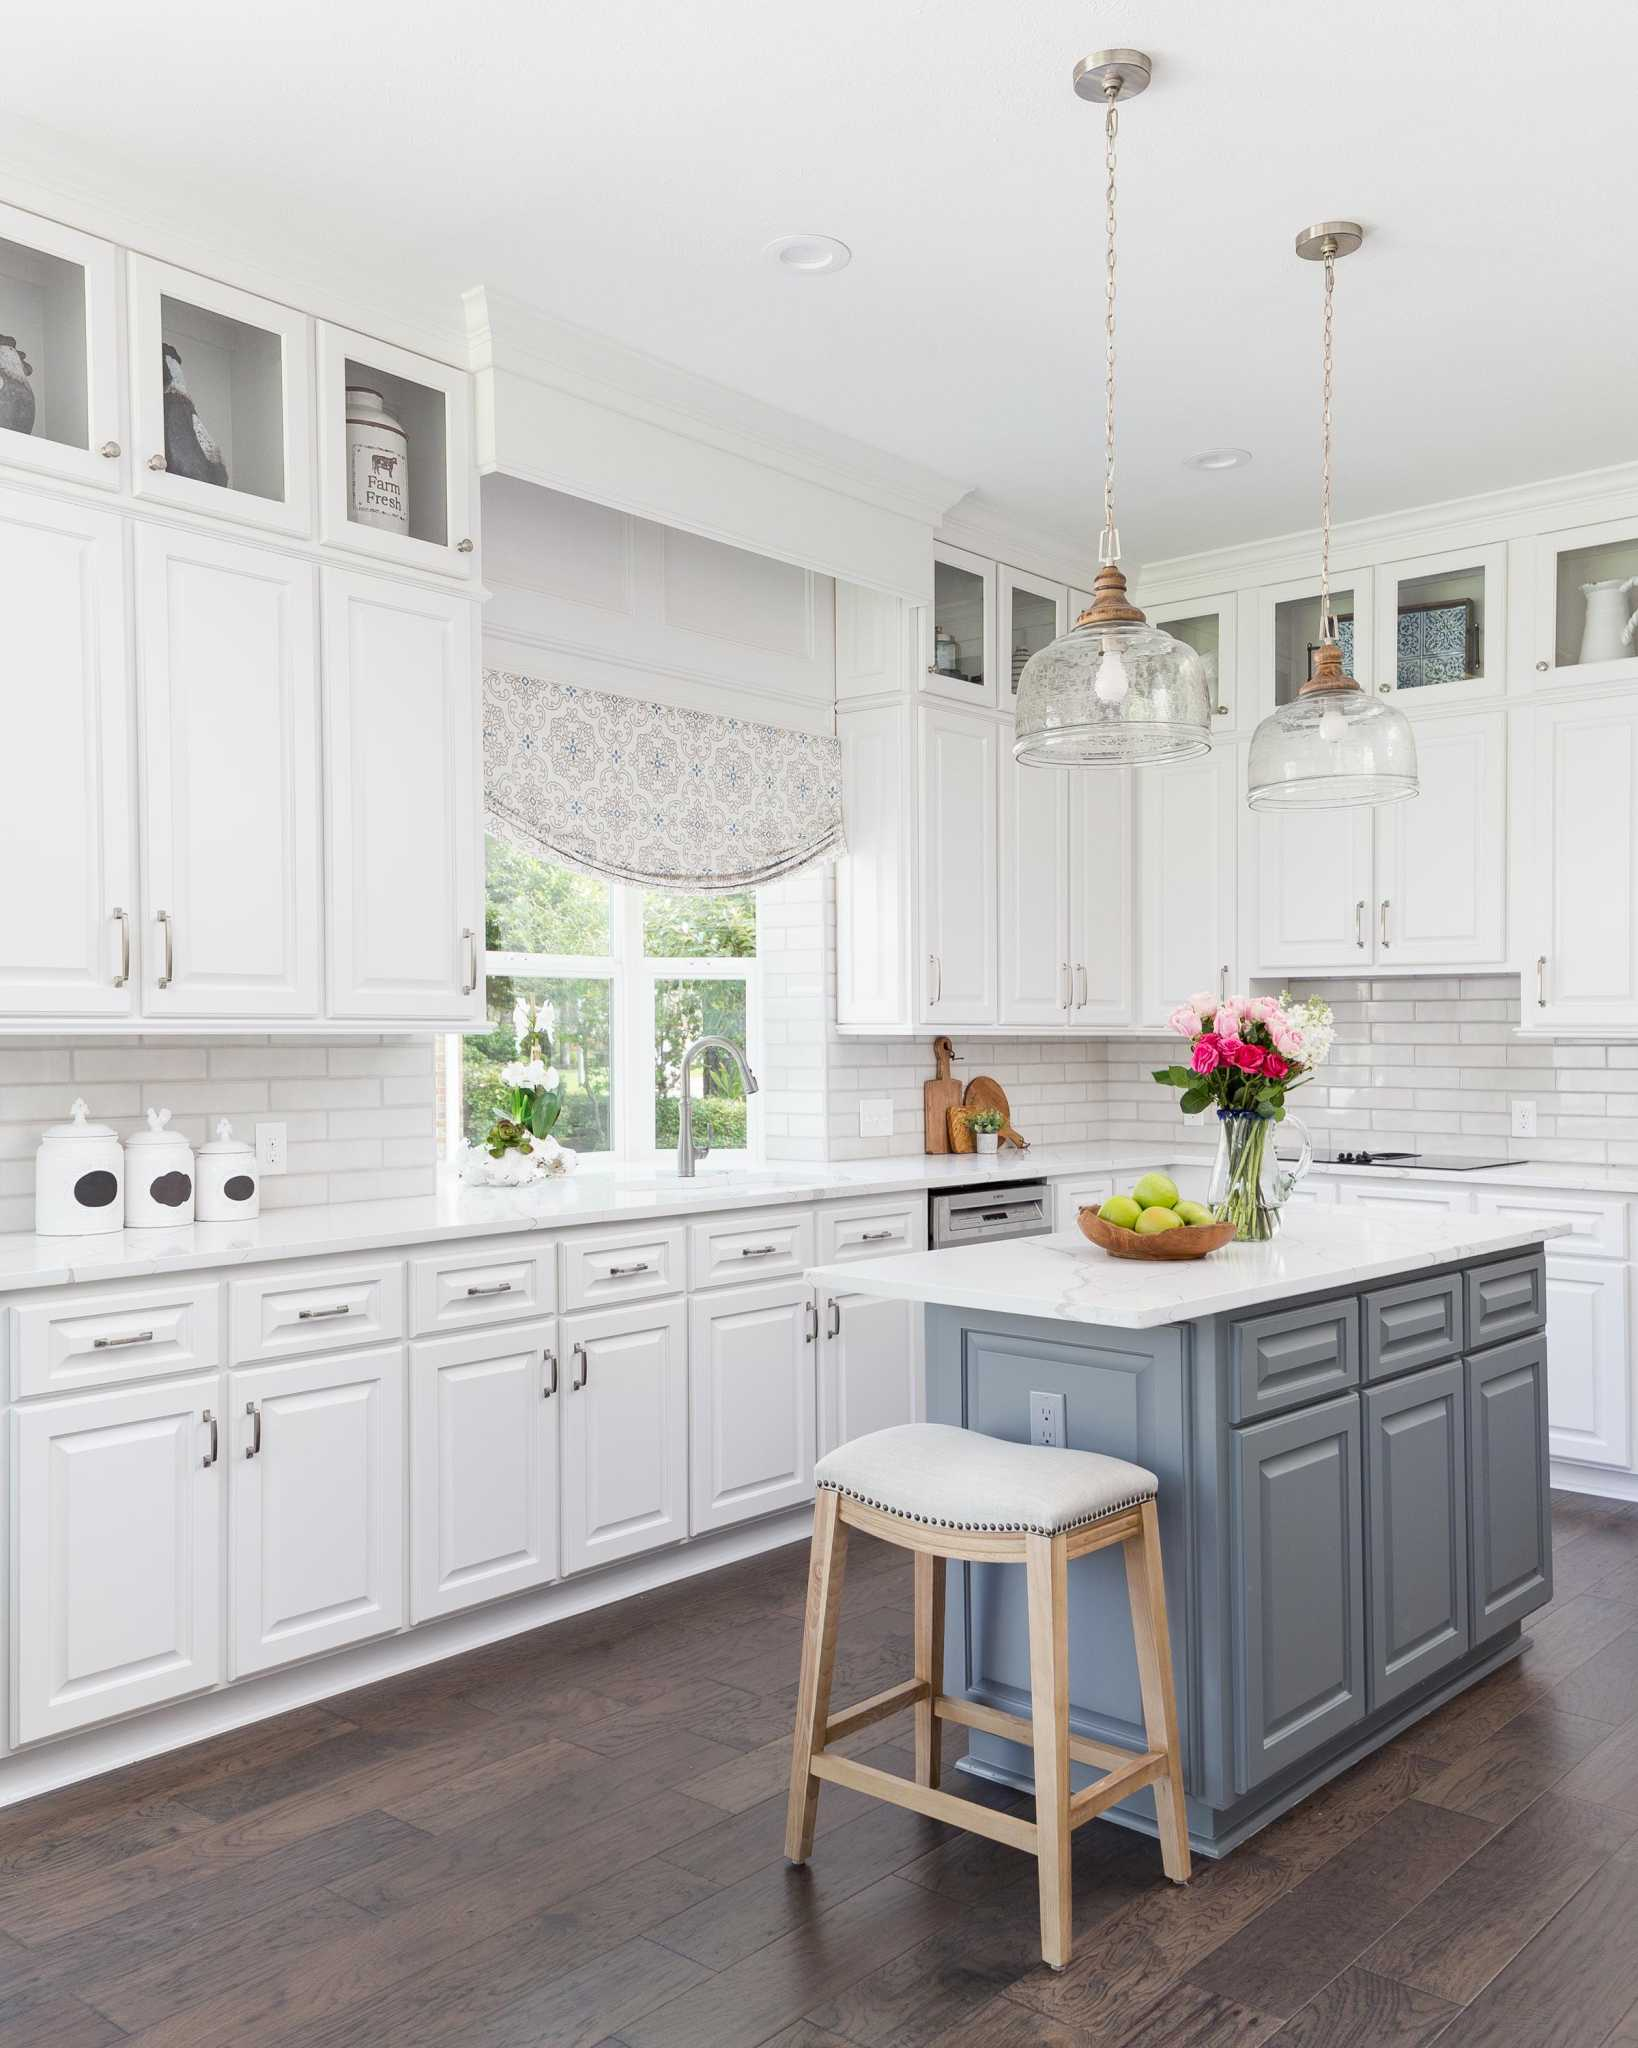 Wondrous Transforming An Ordinary Kitchen Into Something That Will Interior Design Ideas Helimdqseriescom